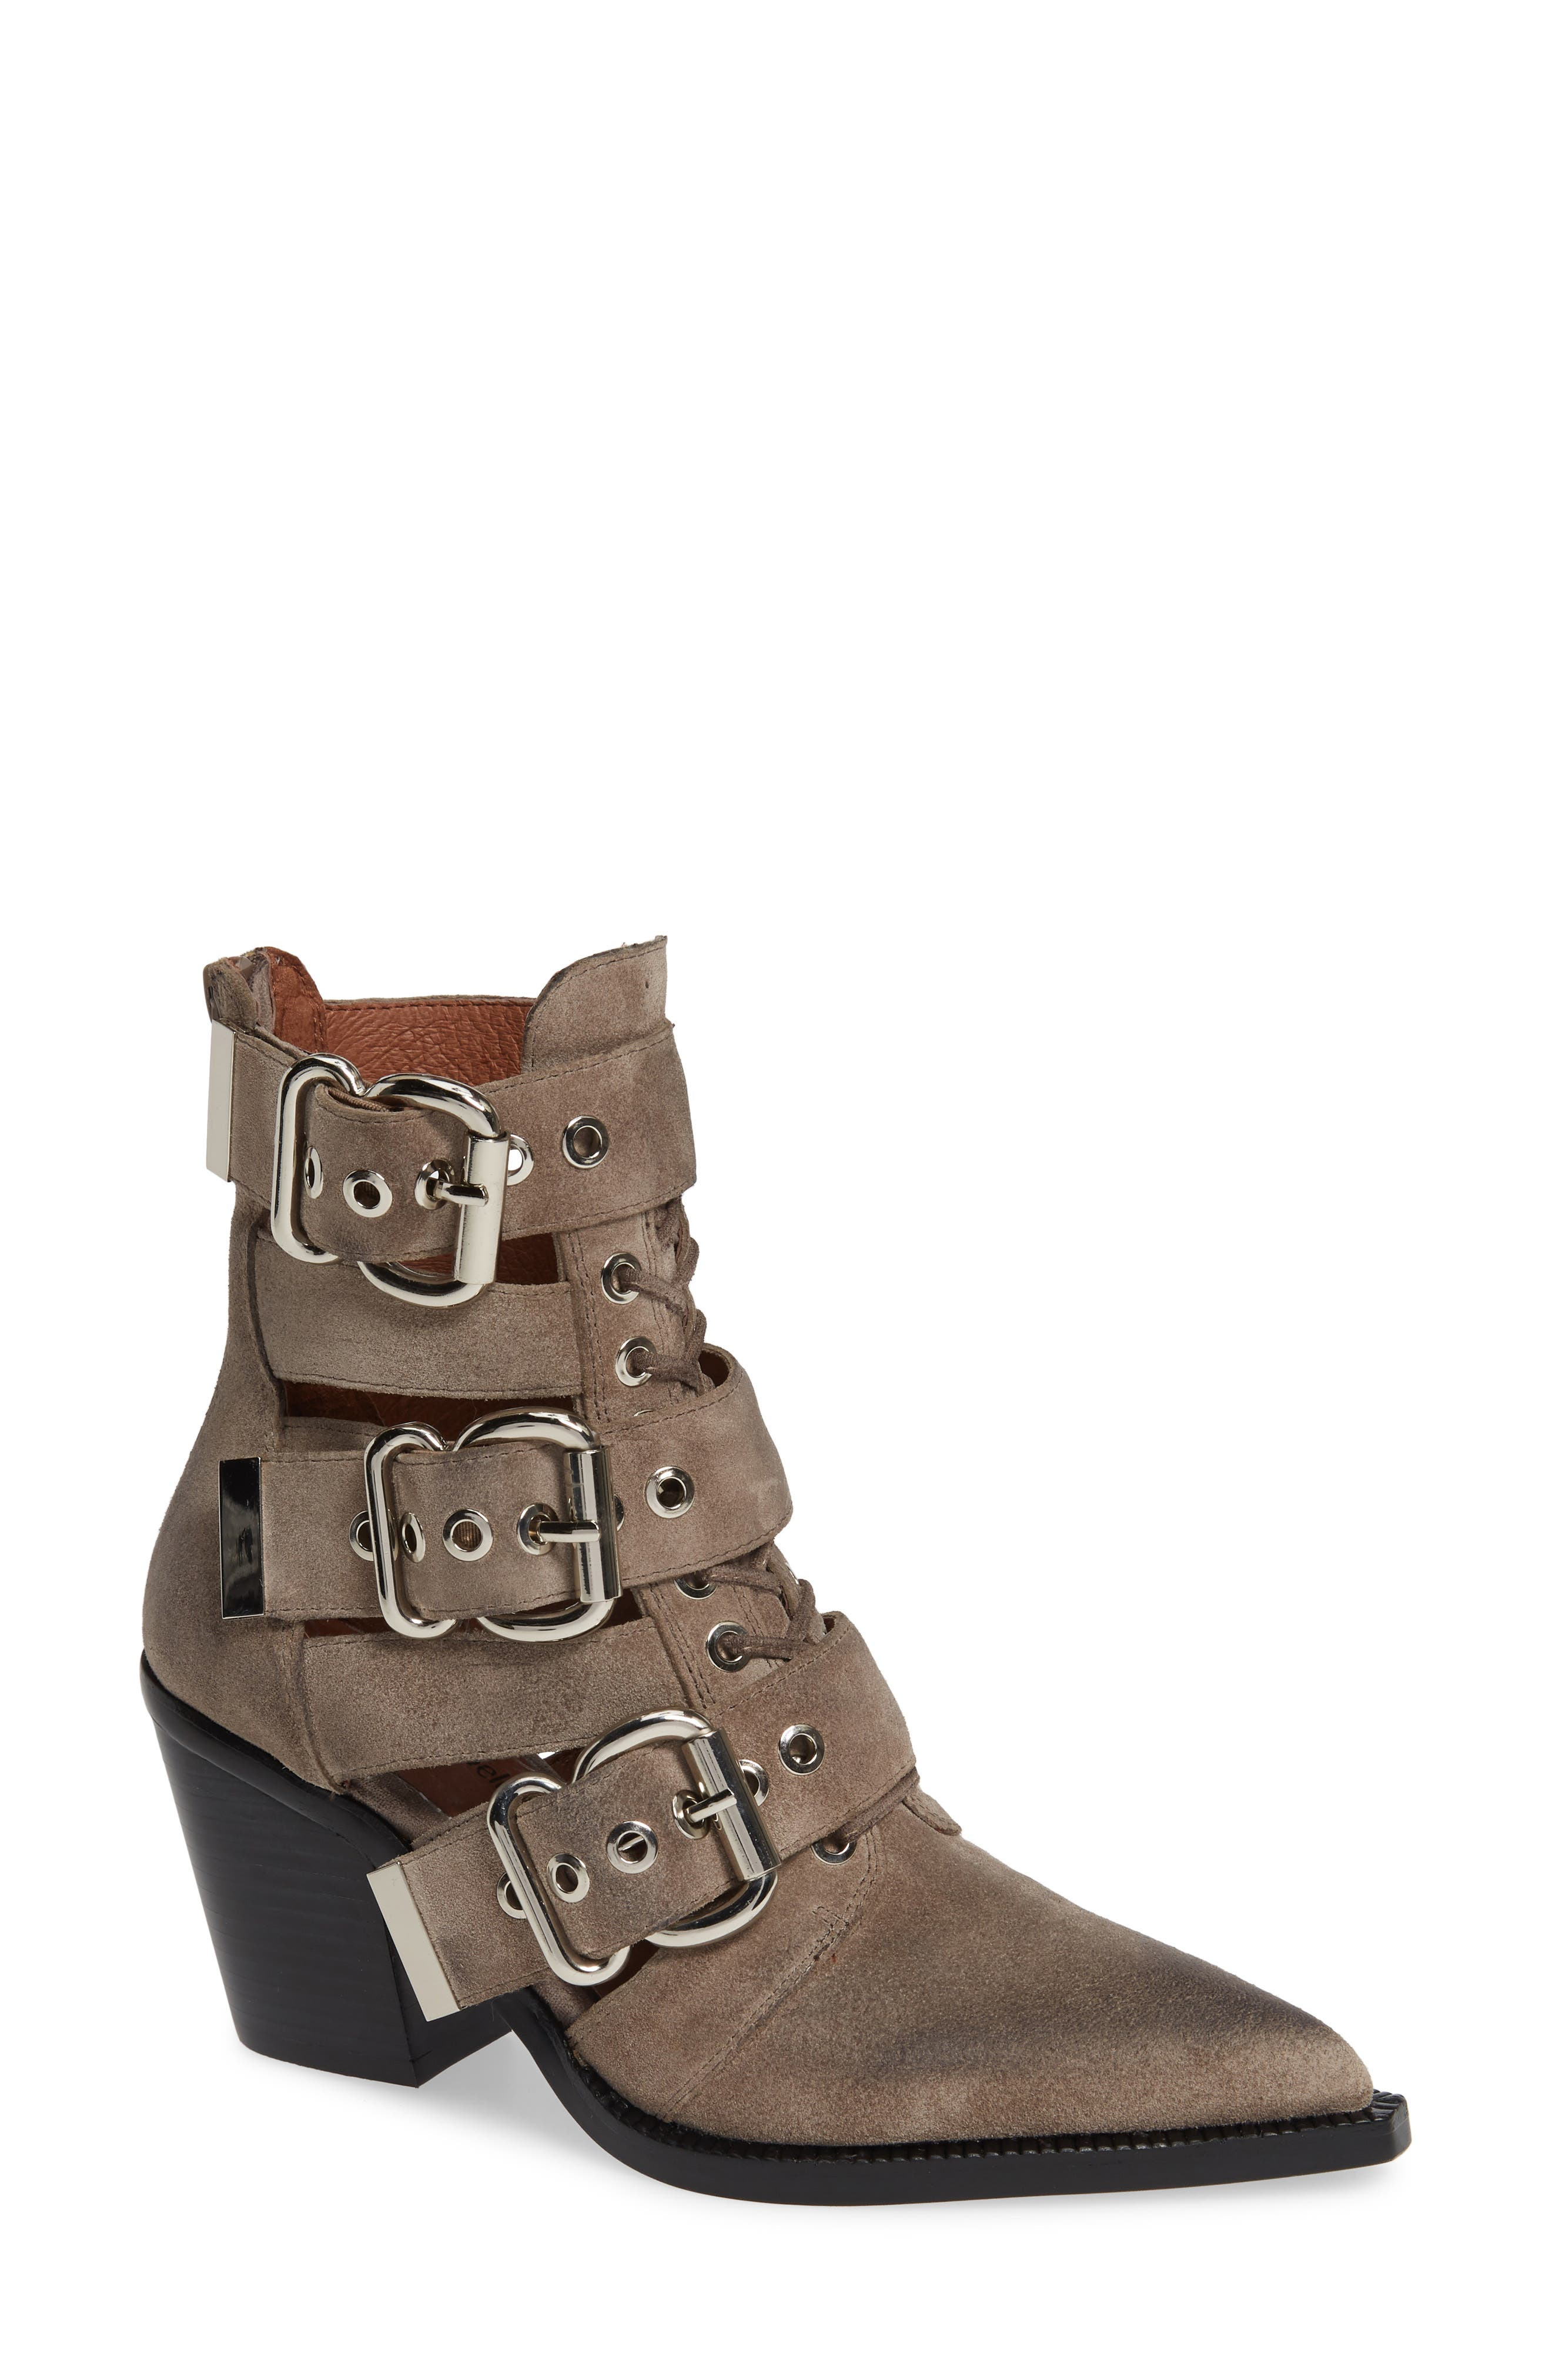 JEFFREY CAMPBELL Caceres Bootie in Taupe Suede